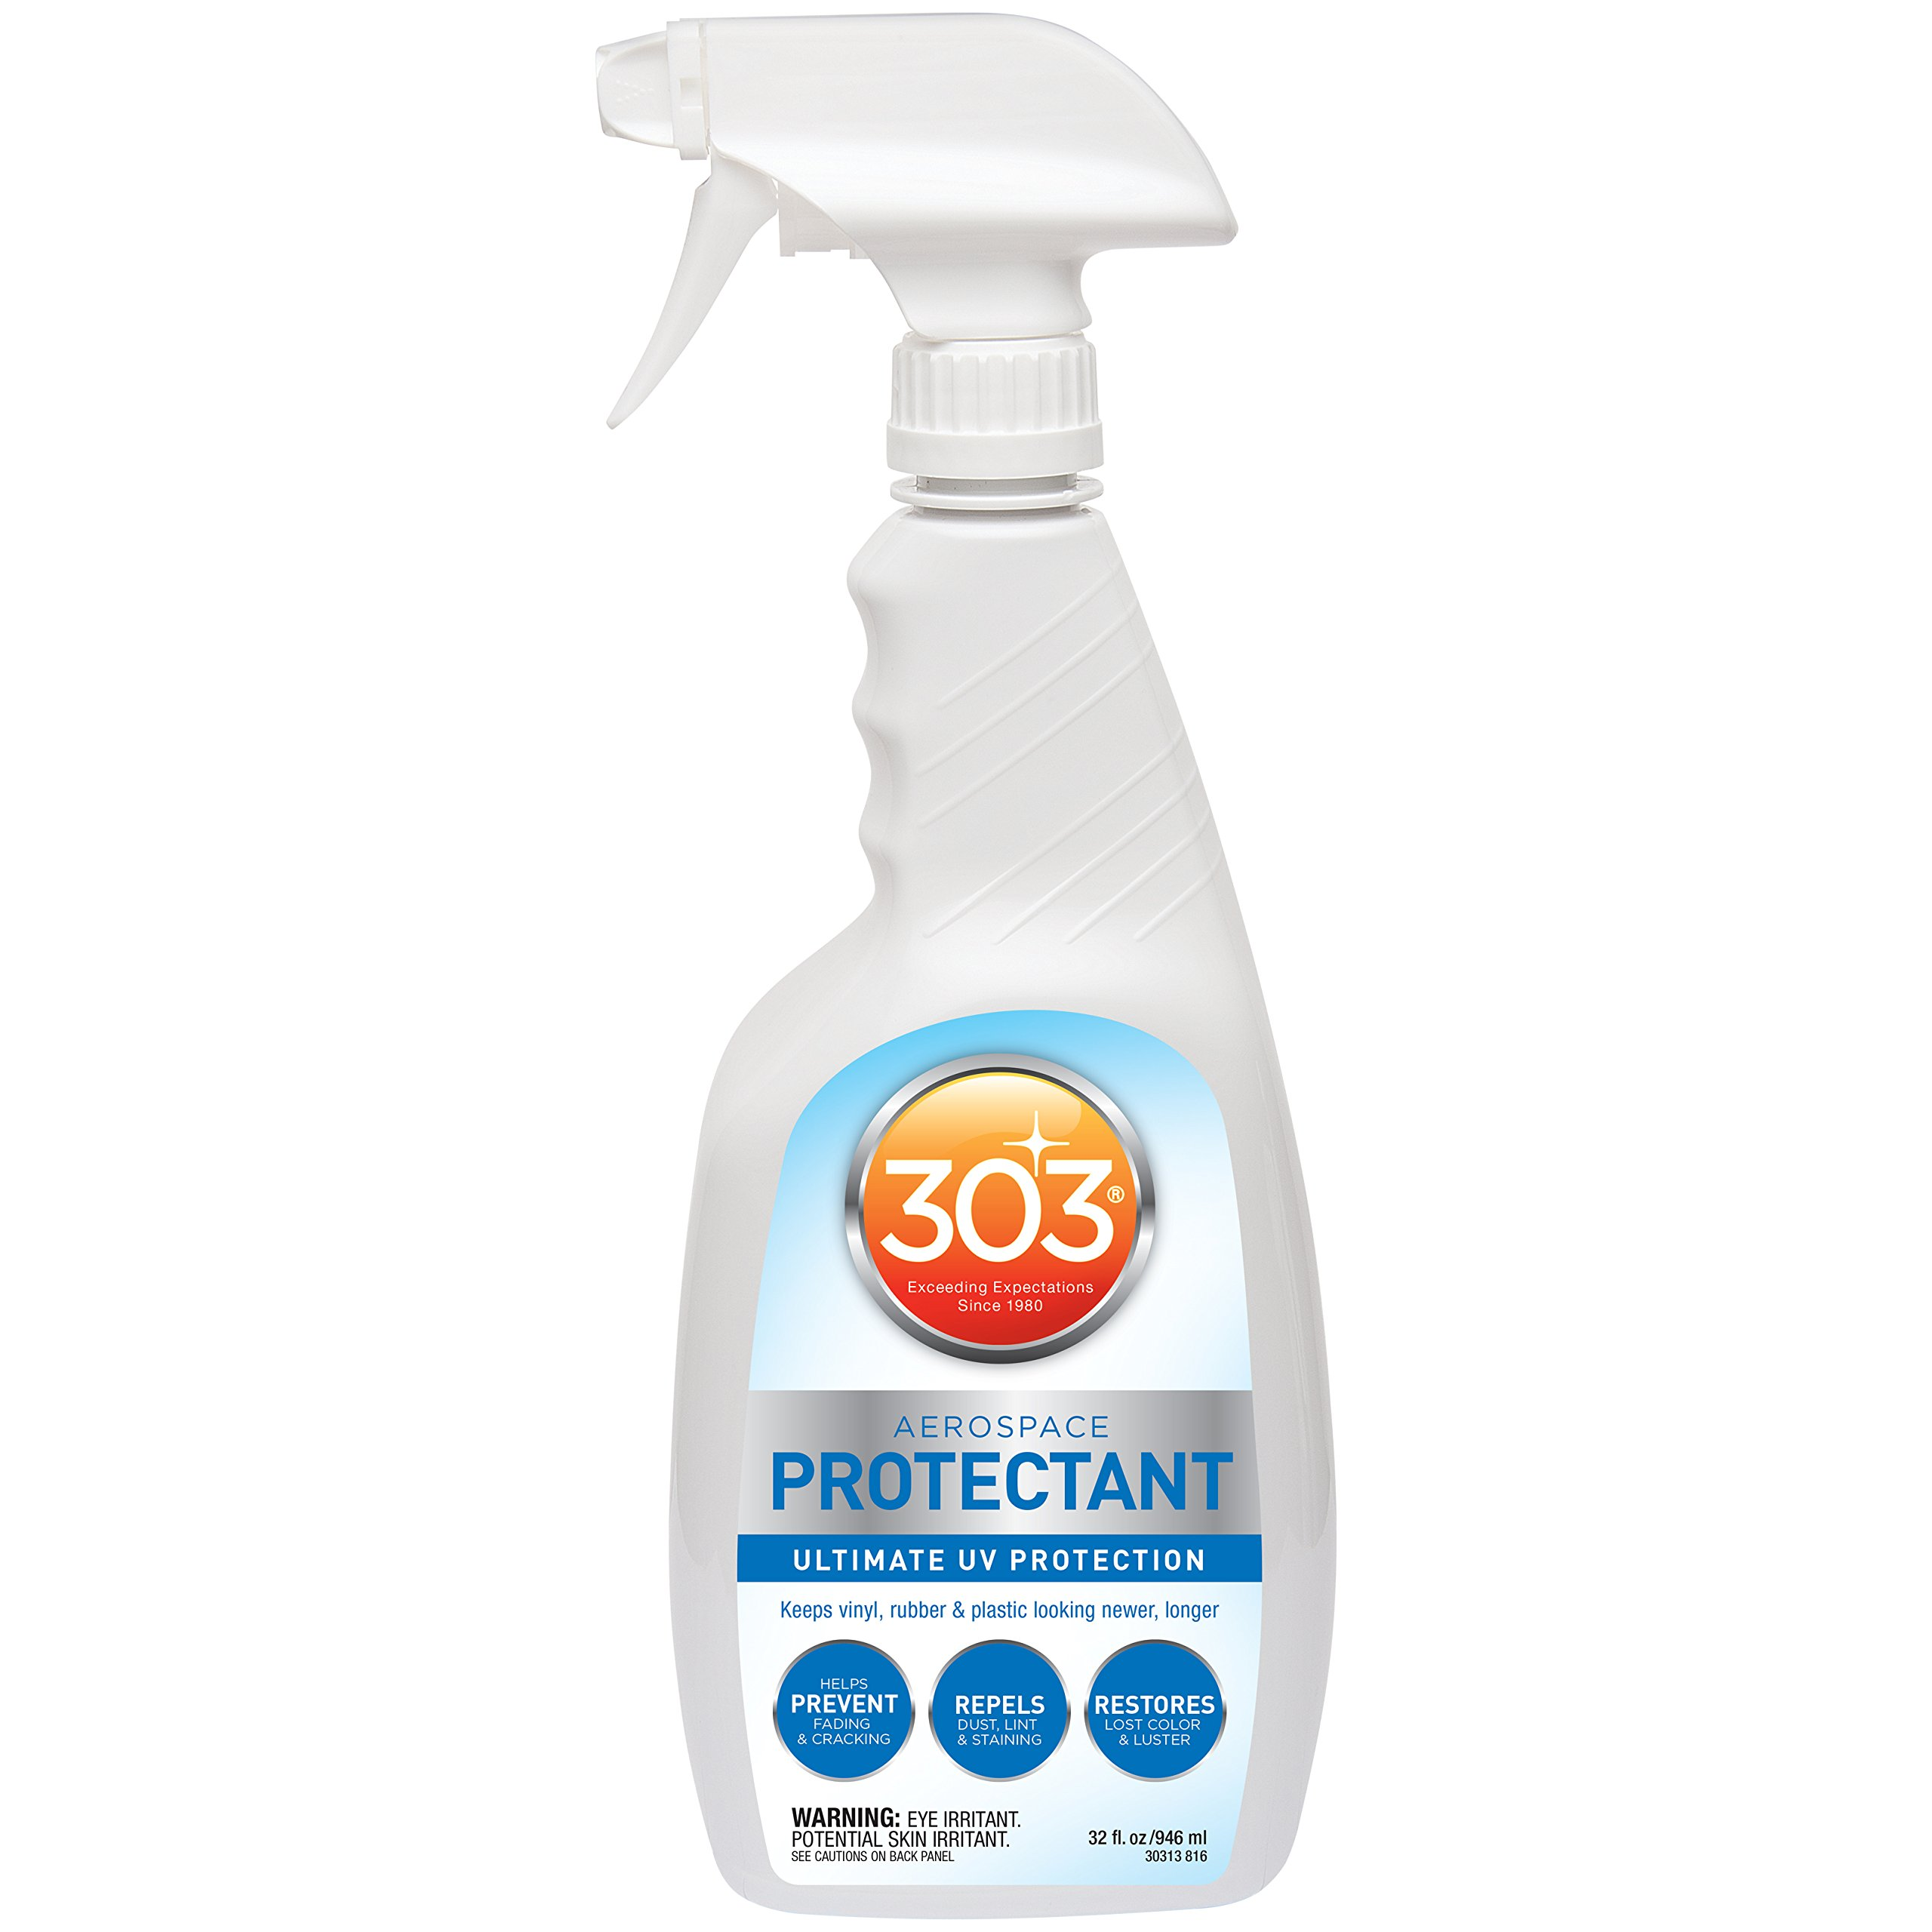 303 (30313-CSR) UV Protectant Spray for Vinyl, Plastic, Rubber, Fiberglass, Leather & More - Dust and Dirt Repellant - Non-Toxic, Matte Finish, 32 Fl. oz. by 303 Products